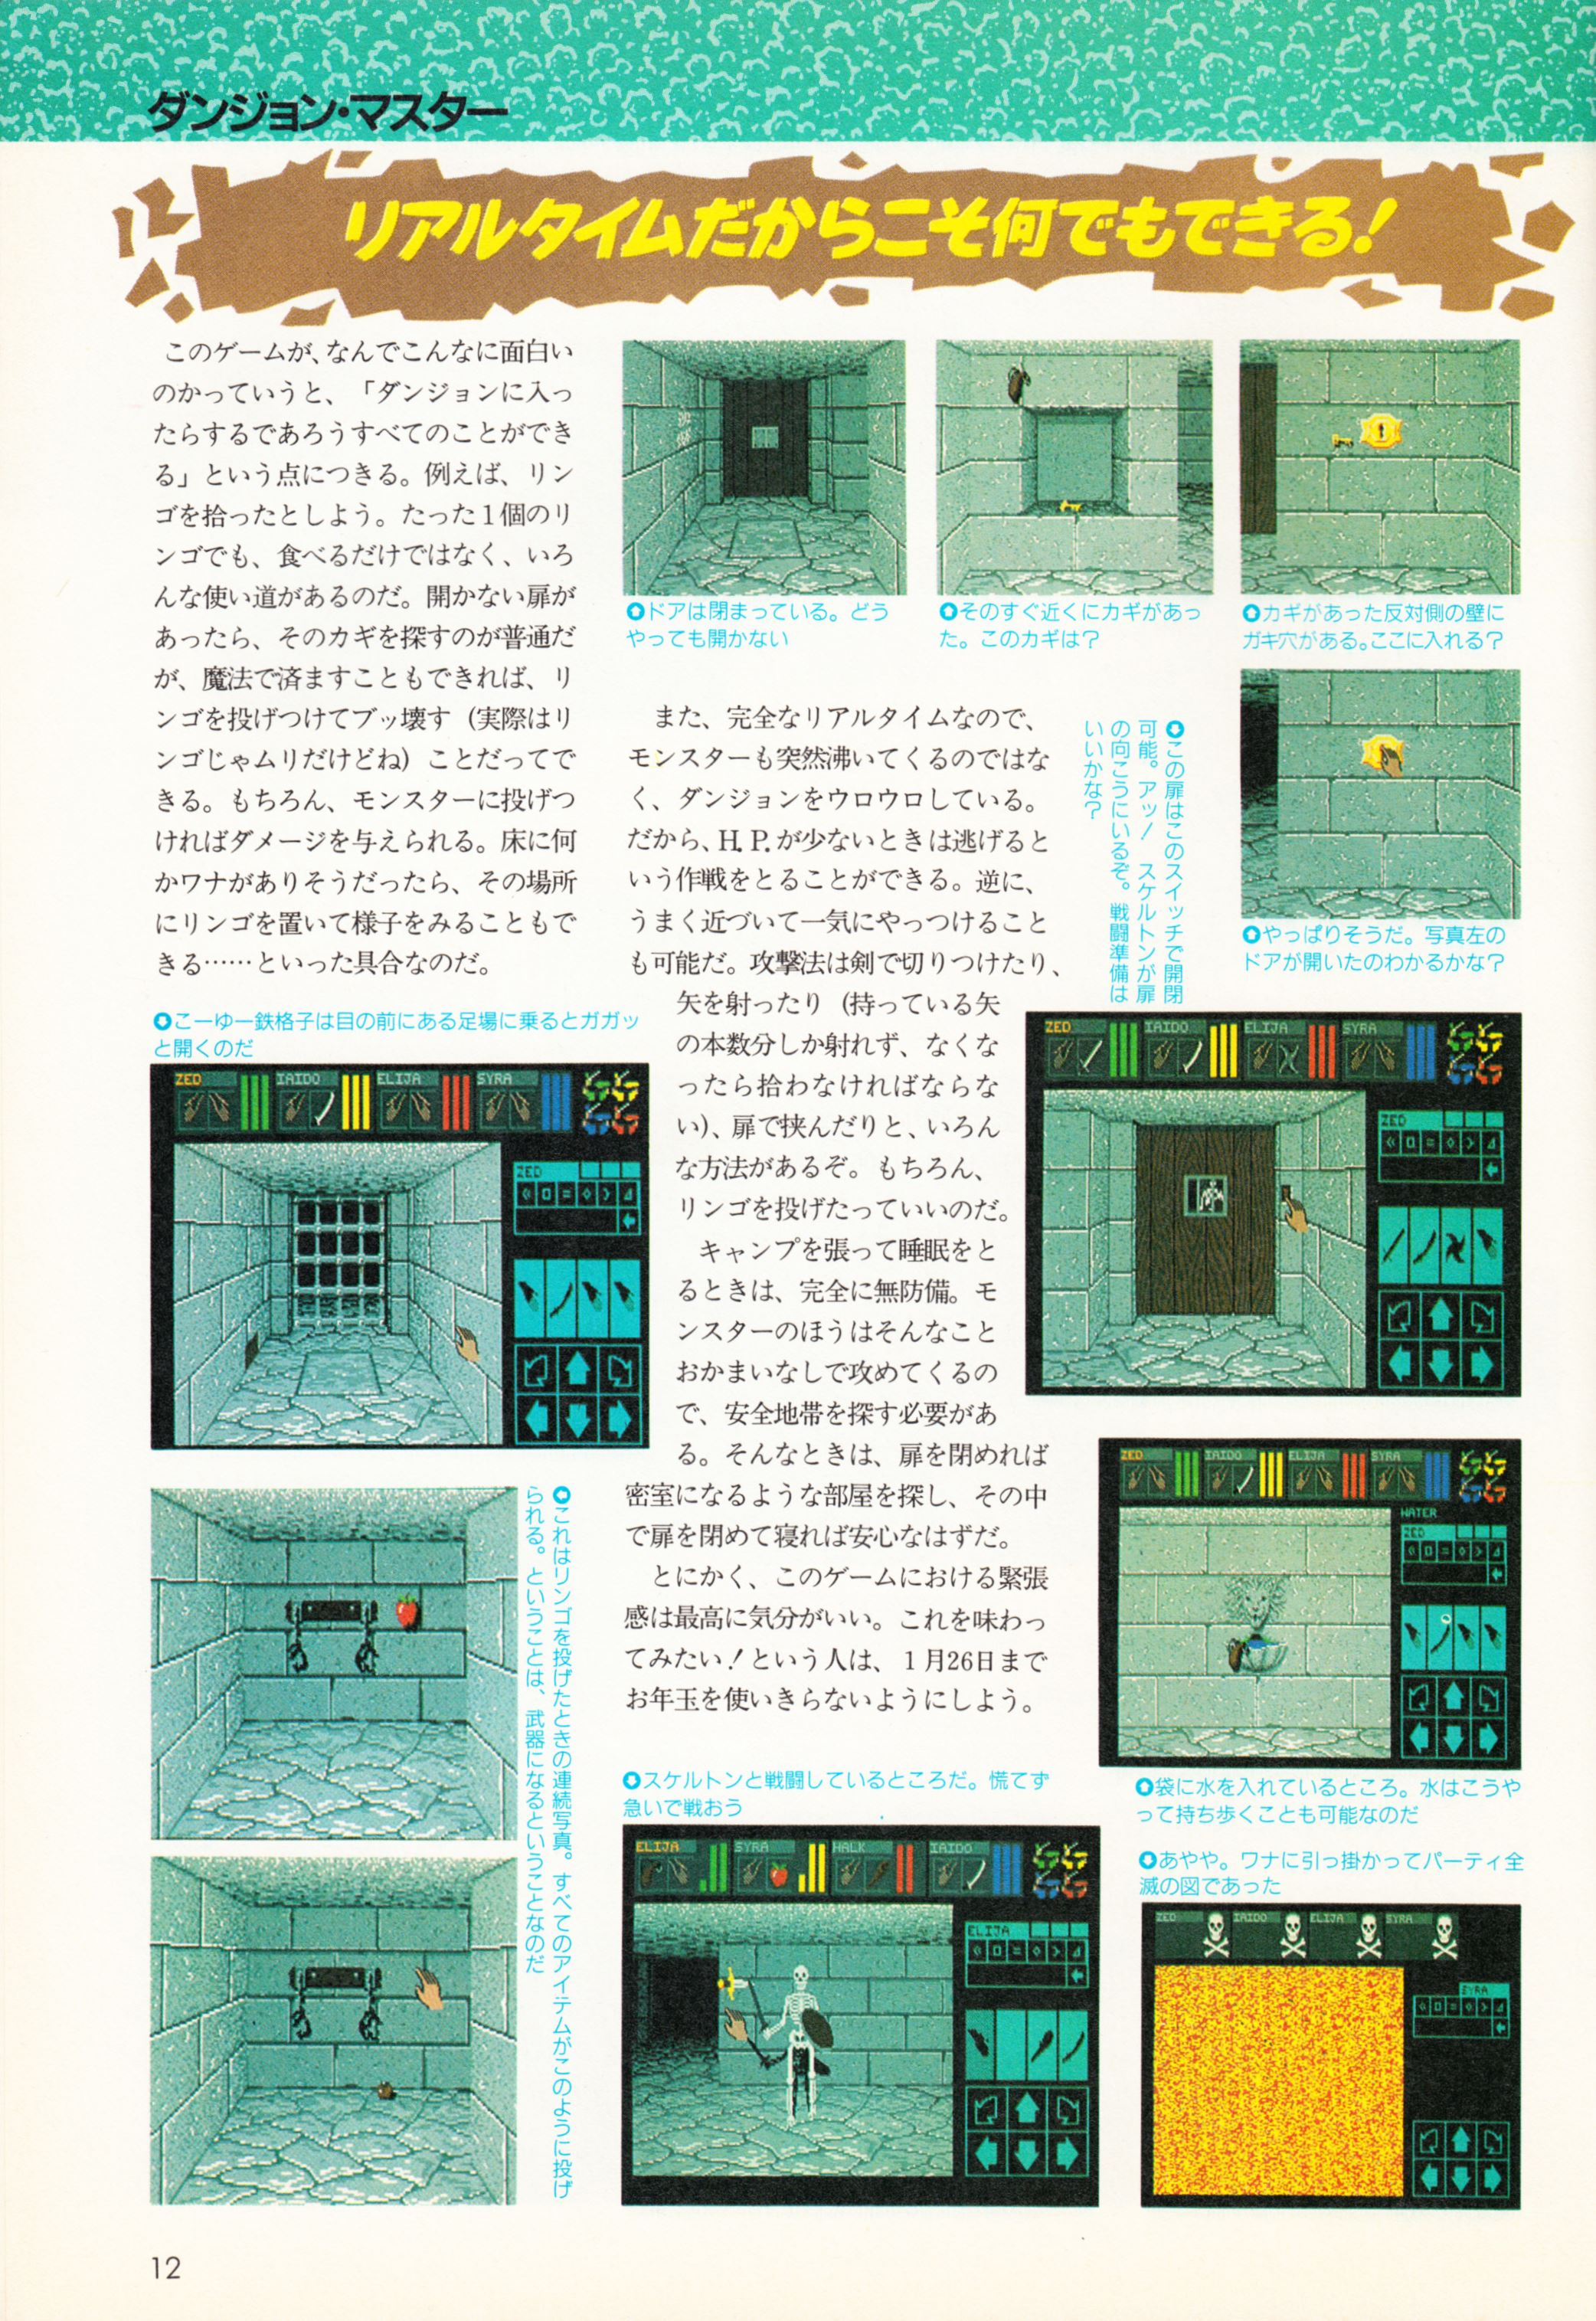 Dungeon Master Review published in Japanese magazine 'Technopolis', Vol 9 No 1 01 January 1990, Page 12